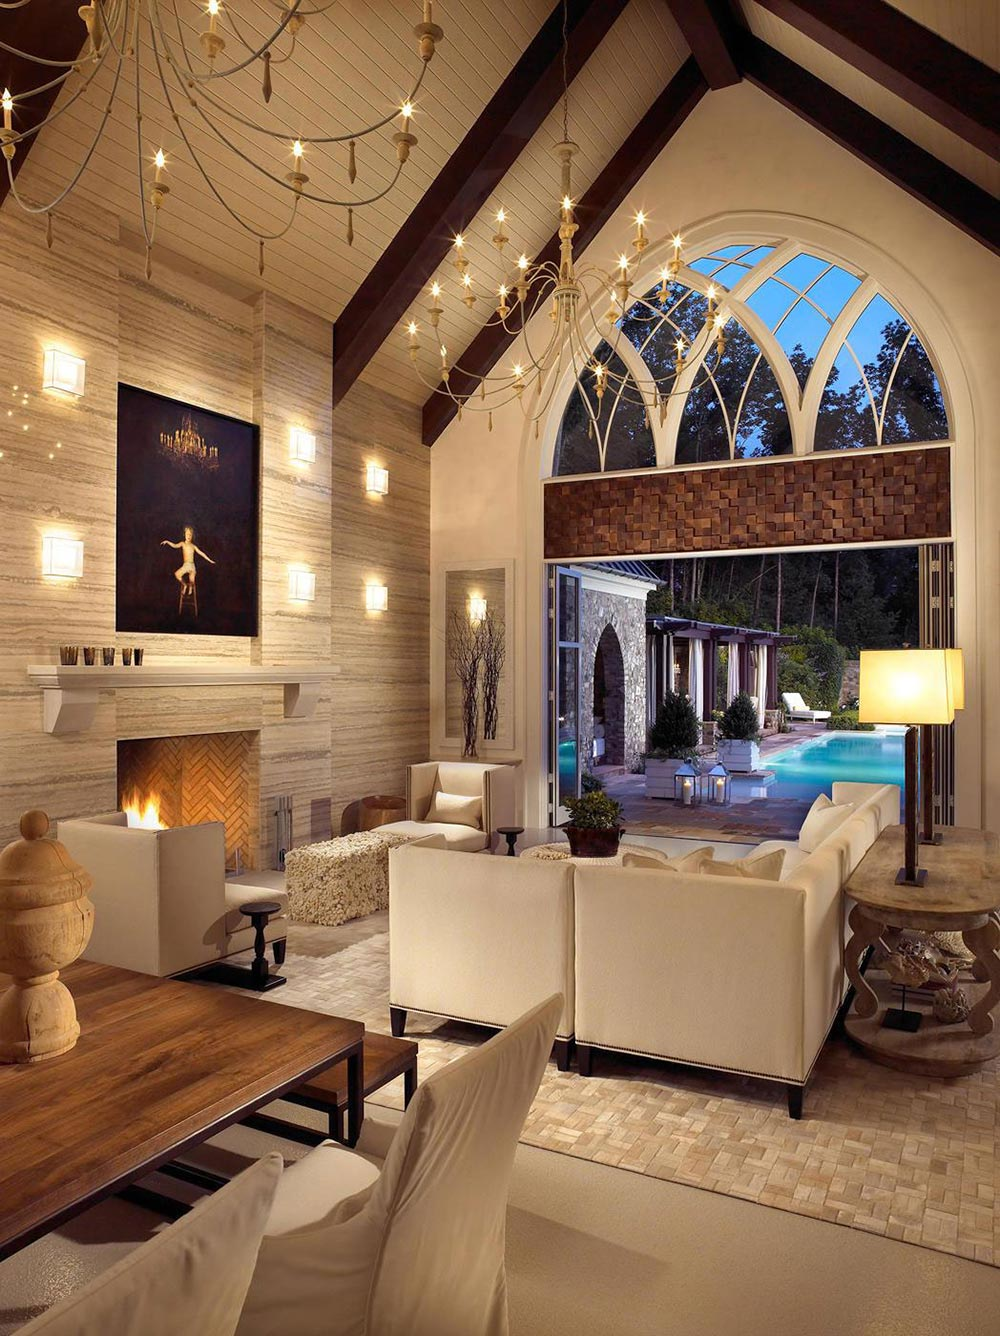 Pool House & Wine Cellar in Nashville, Tennessee by Beckwith Interiors